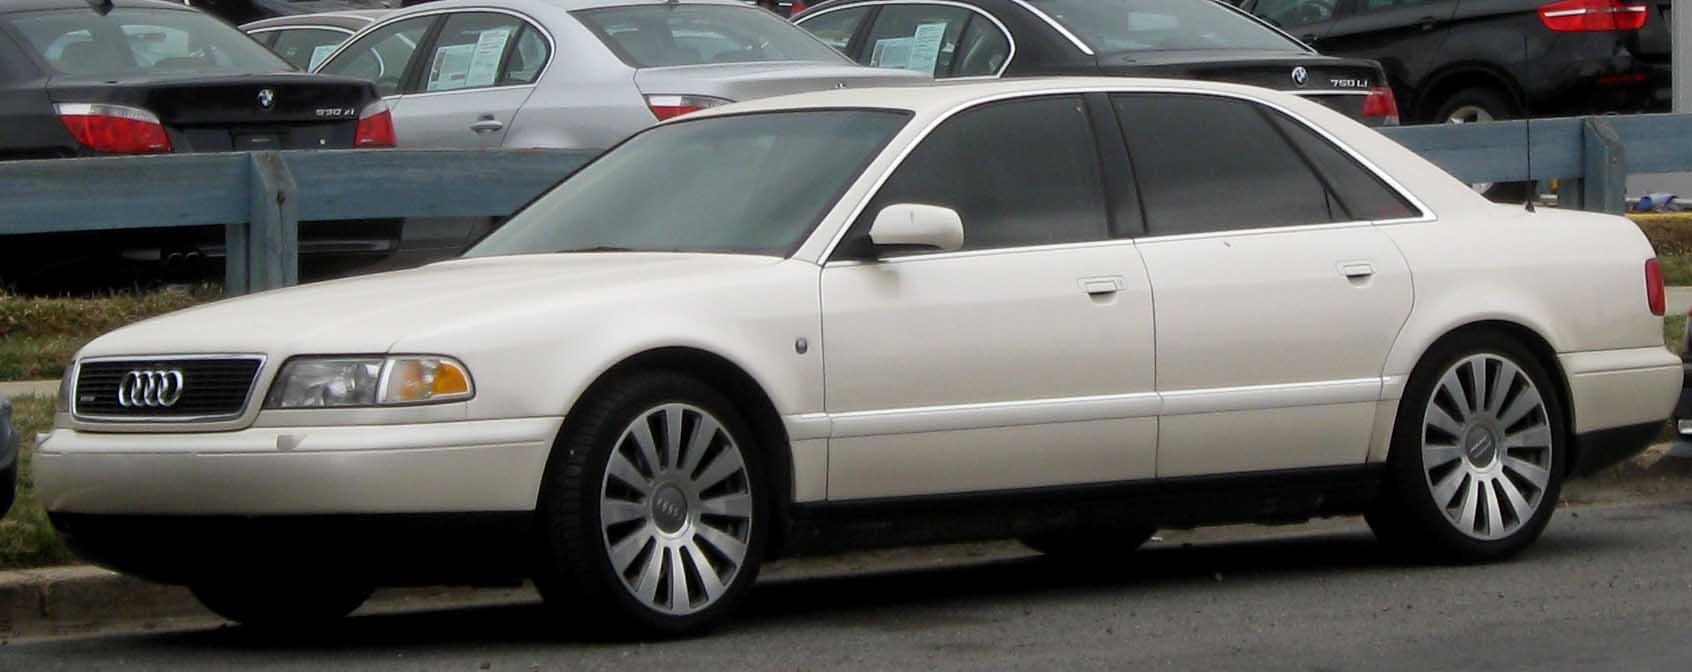 File 1st Audi A8 4 2 Jpg Wikimedia Commons